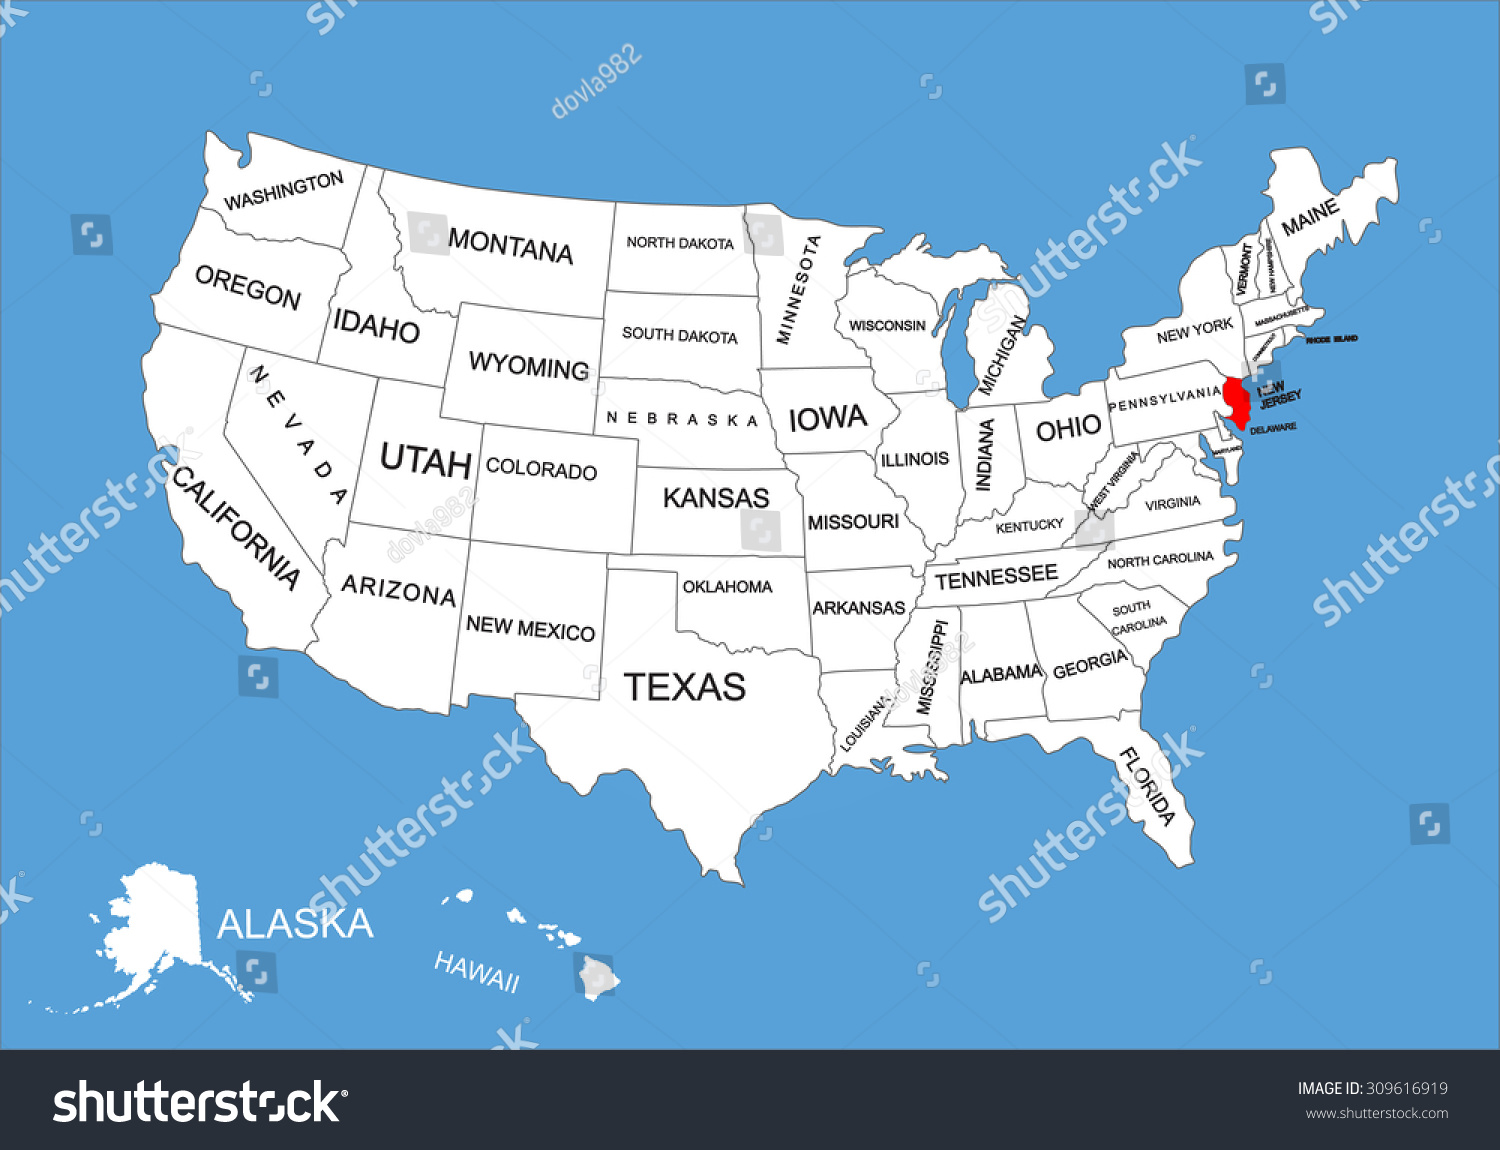 Map Of New Jersey State Usa Large Administrative Map Of New - Map of states in usa